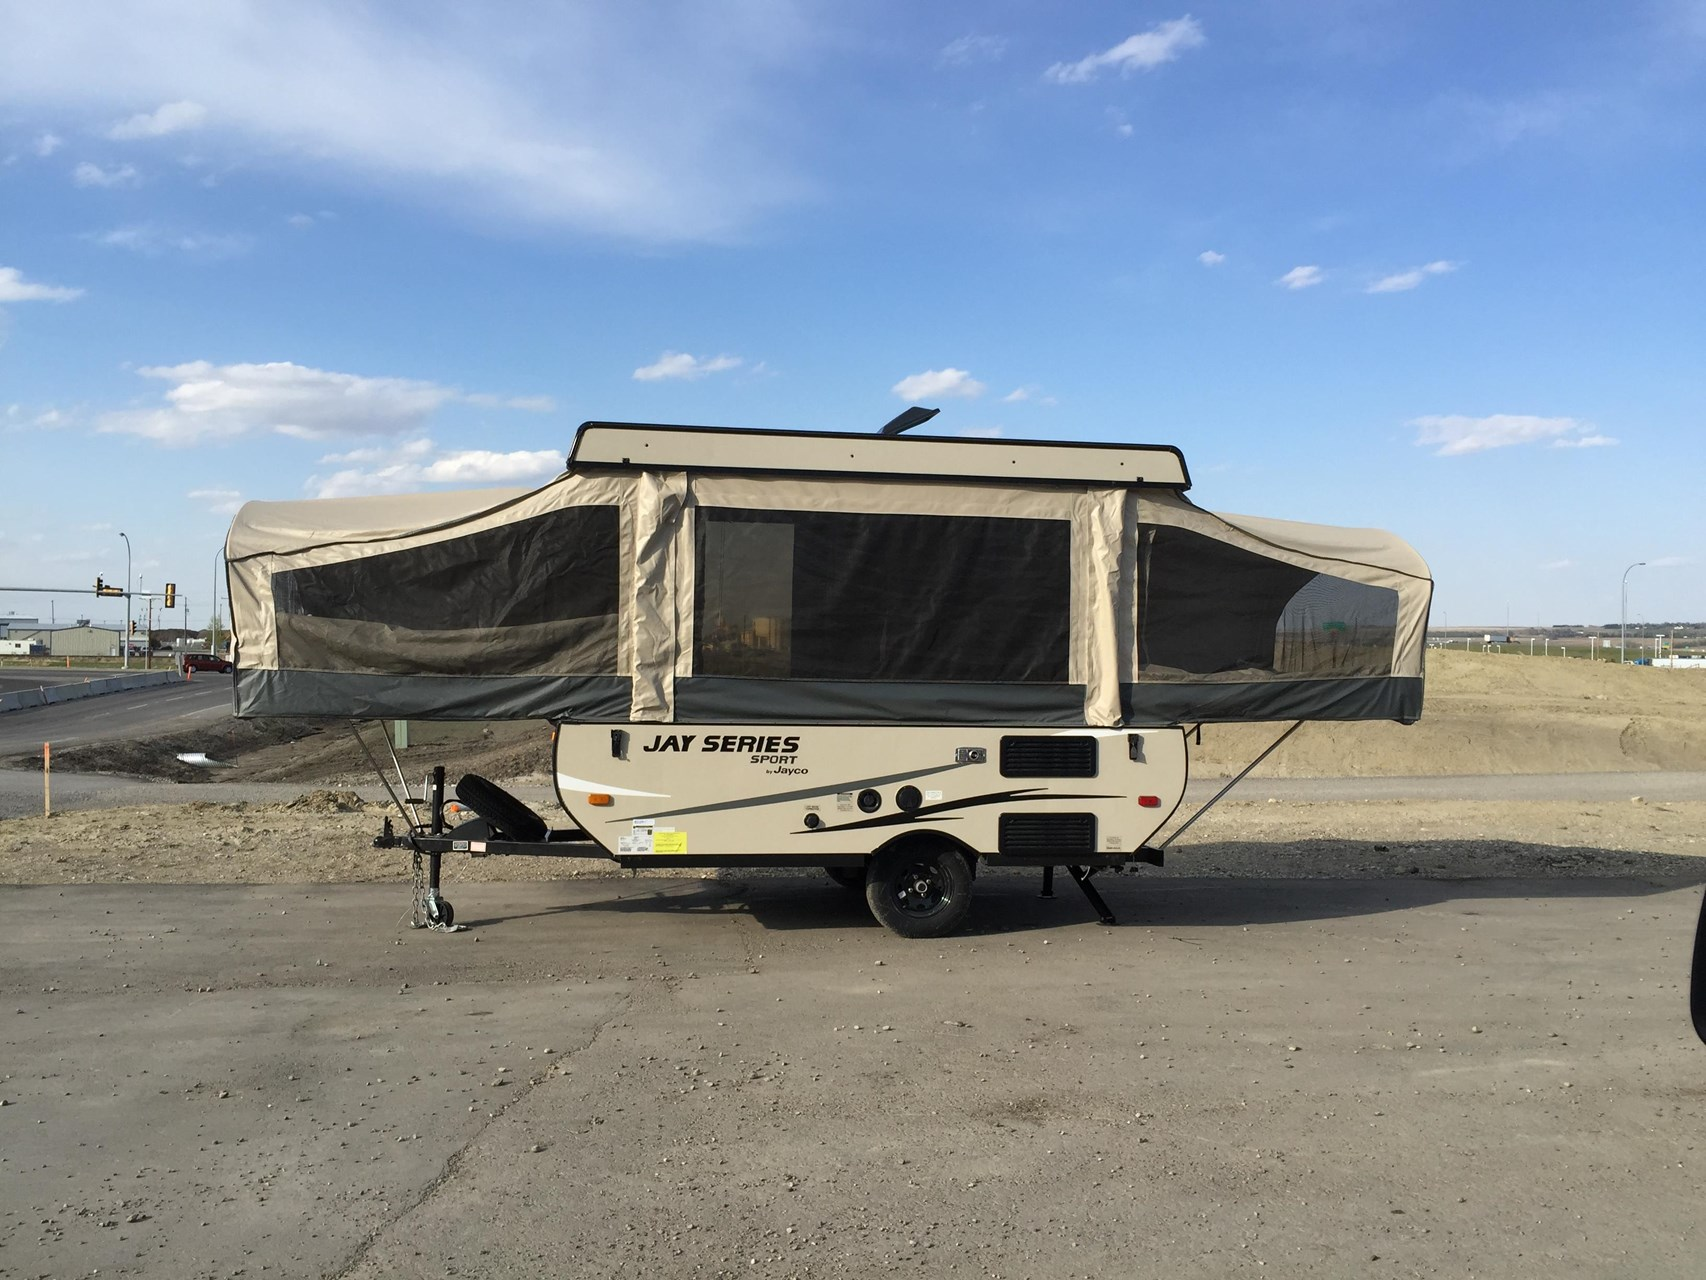 Jayco Tent Trailer - Get out & enjoy some camping!